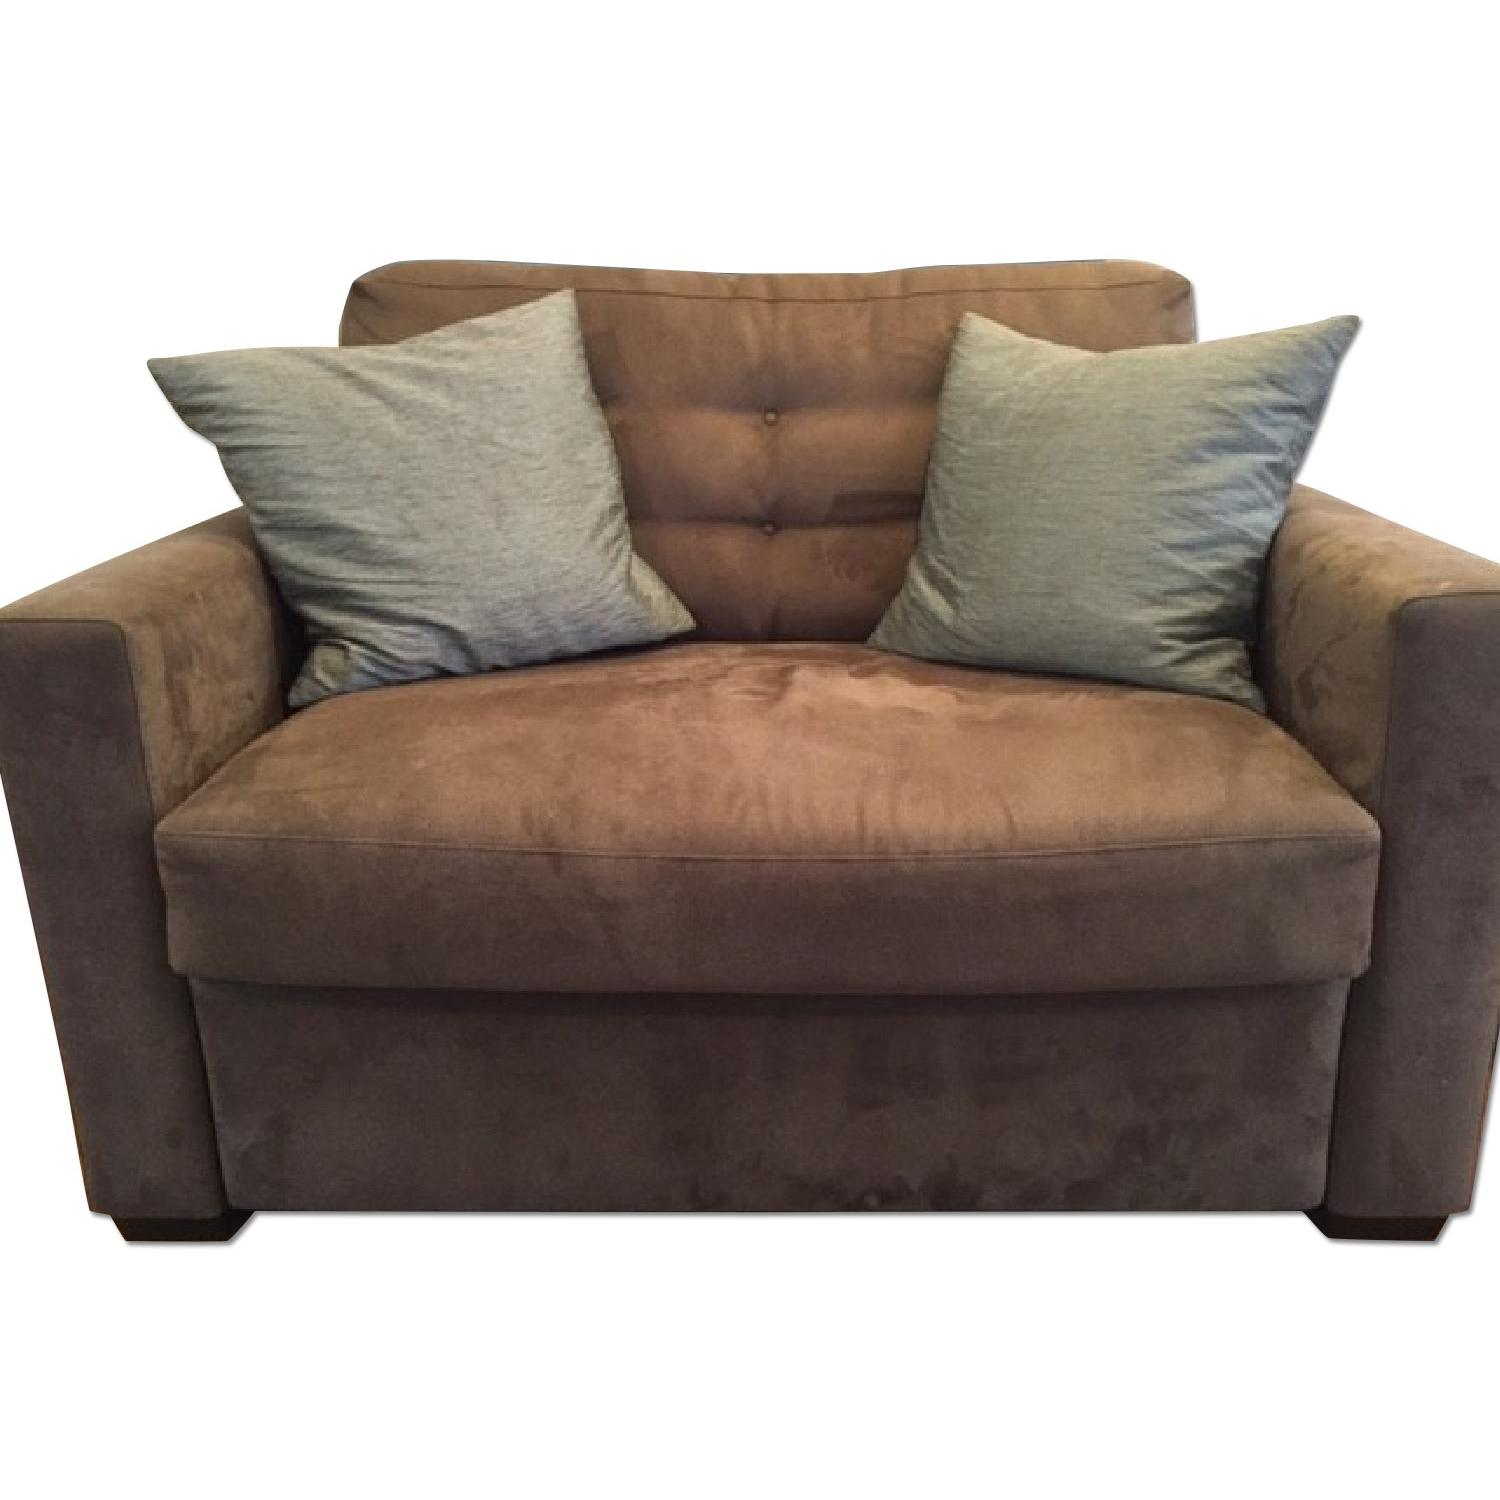 Crate Barrel Tan Loveseat Twin Sleeper Sofa Aptdeco